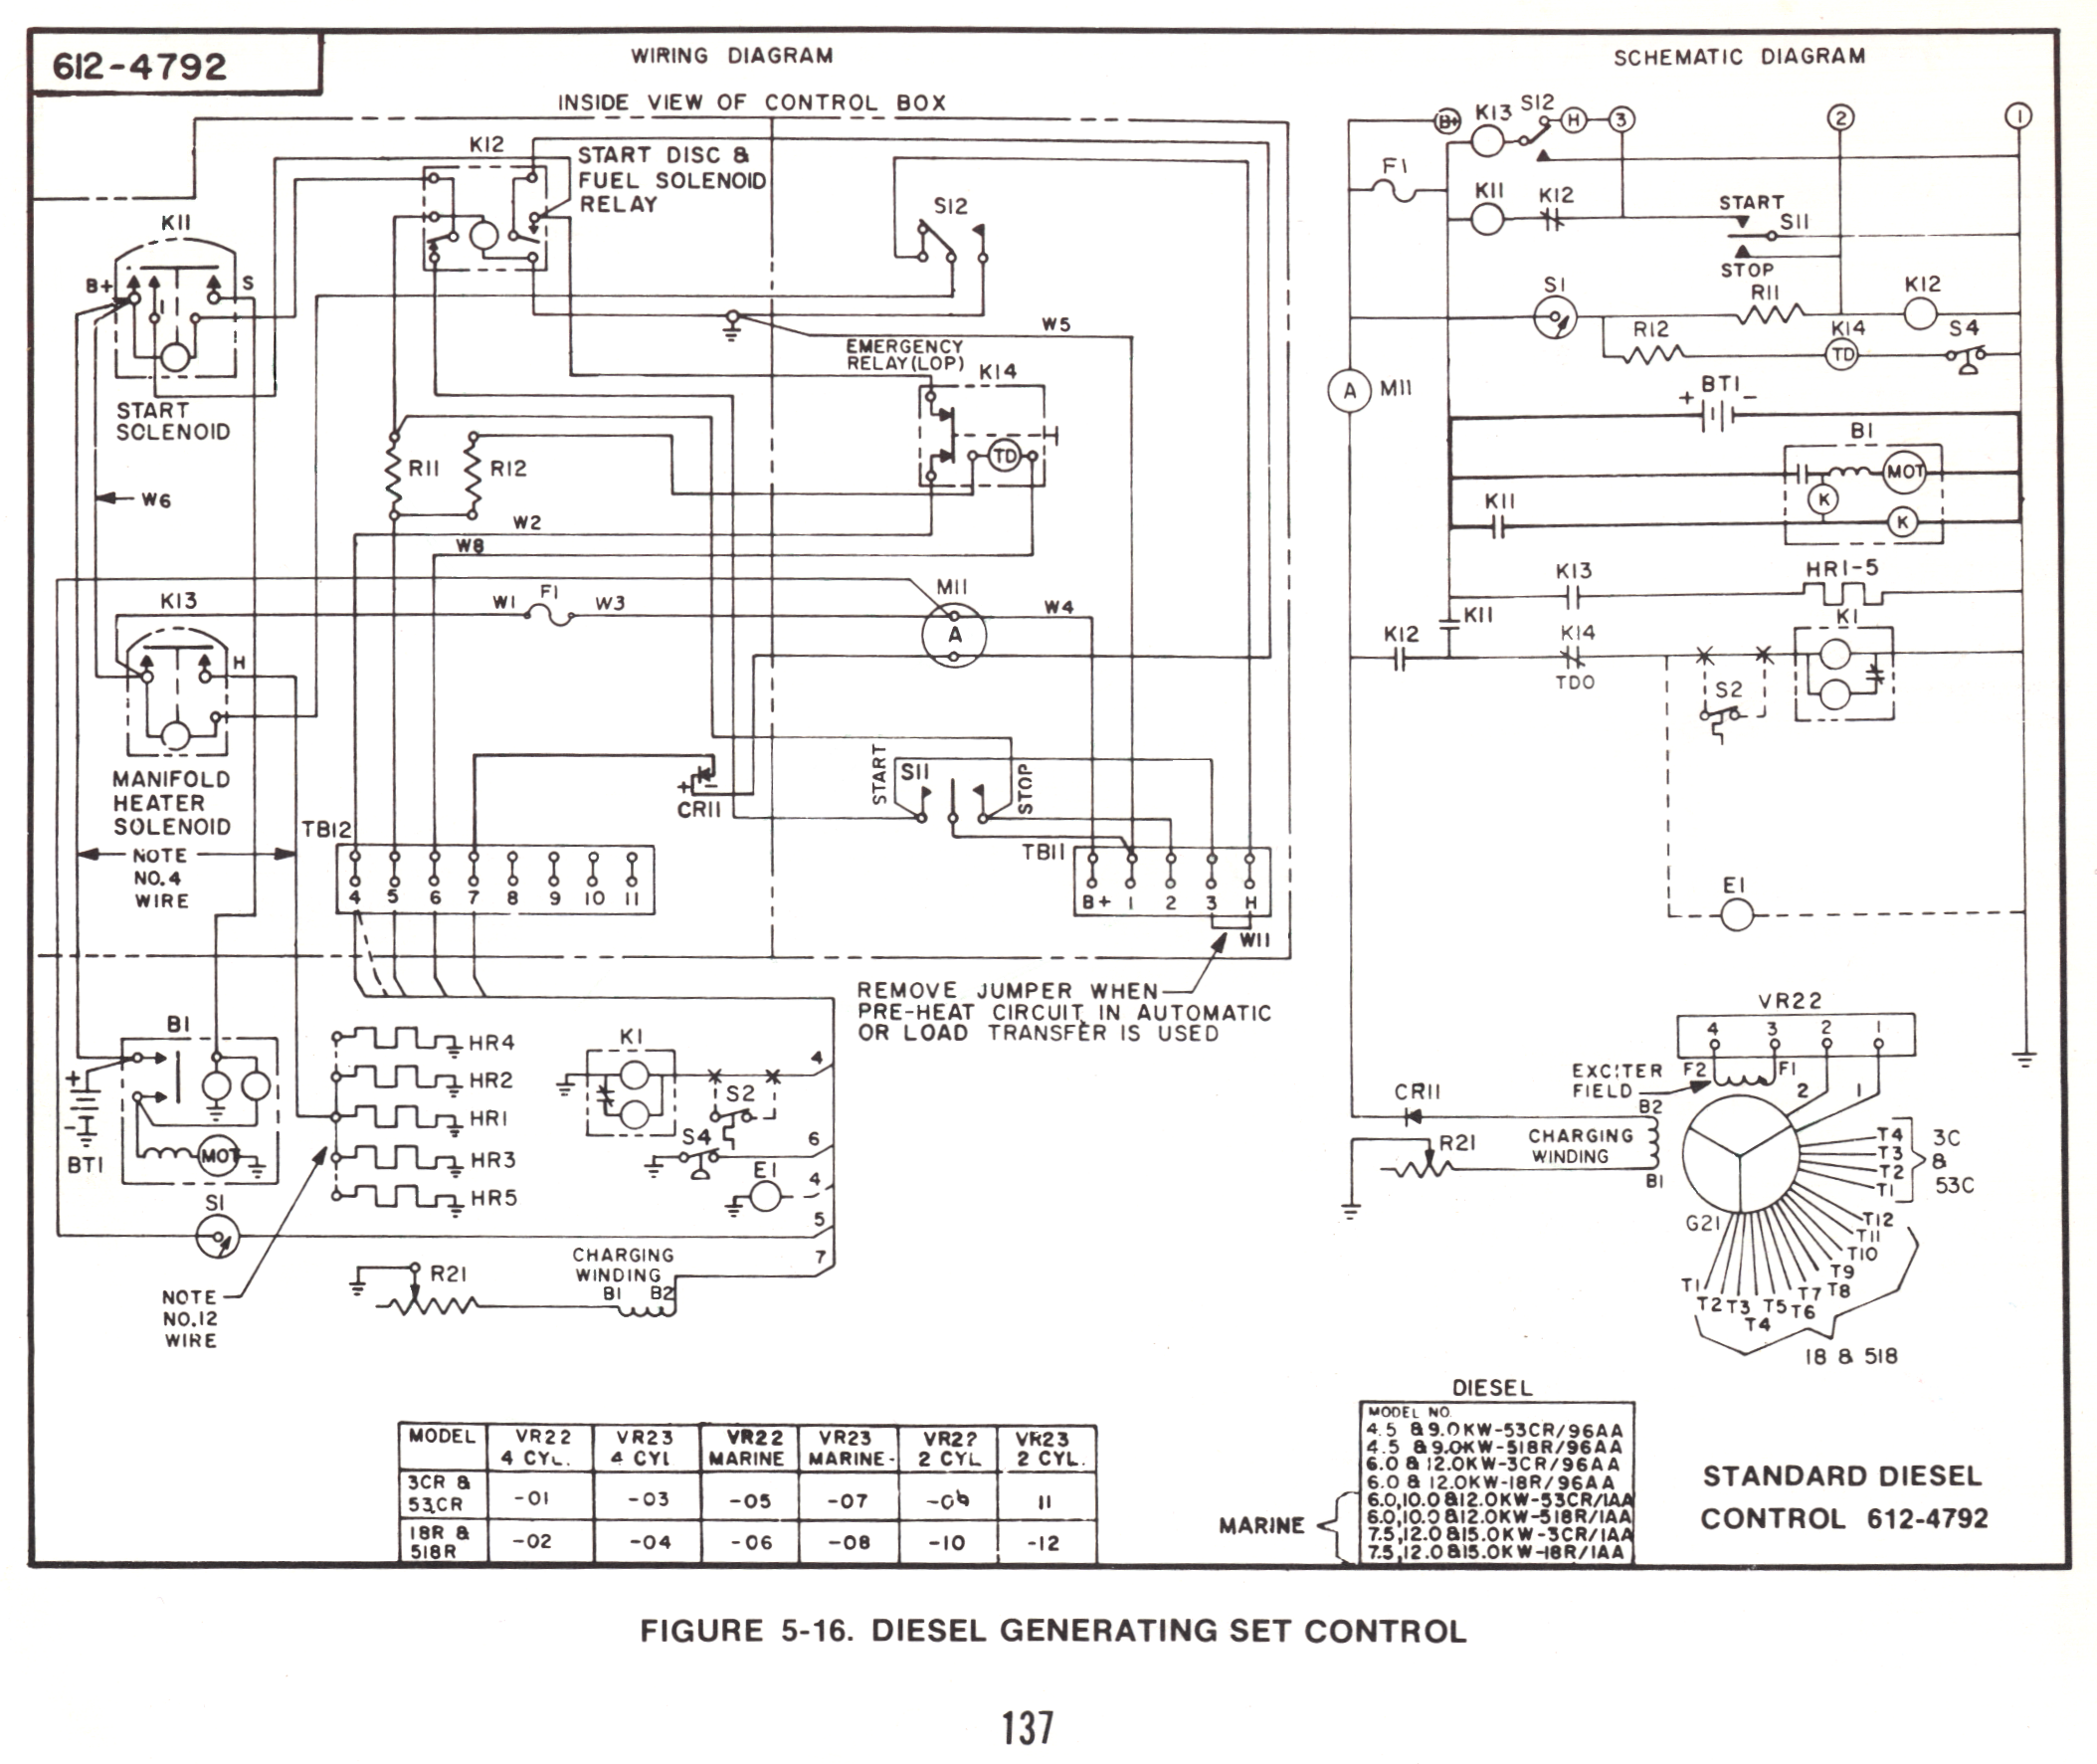 Onan_Diesel_Controls_612 4792_b onan stuff onan generator wiring diagram at edmiracle.co